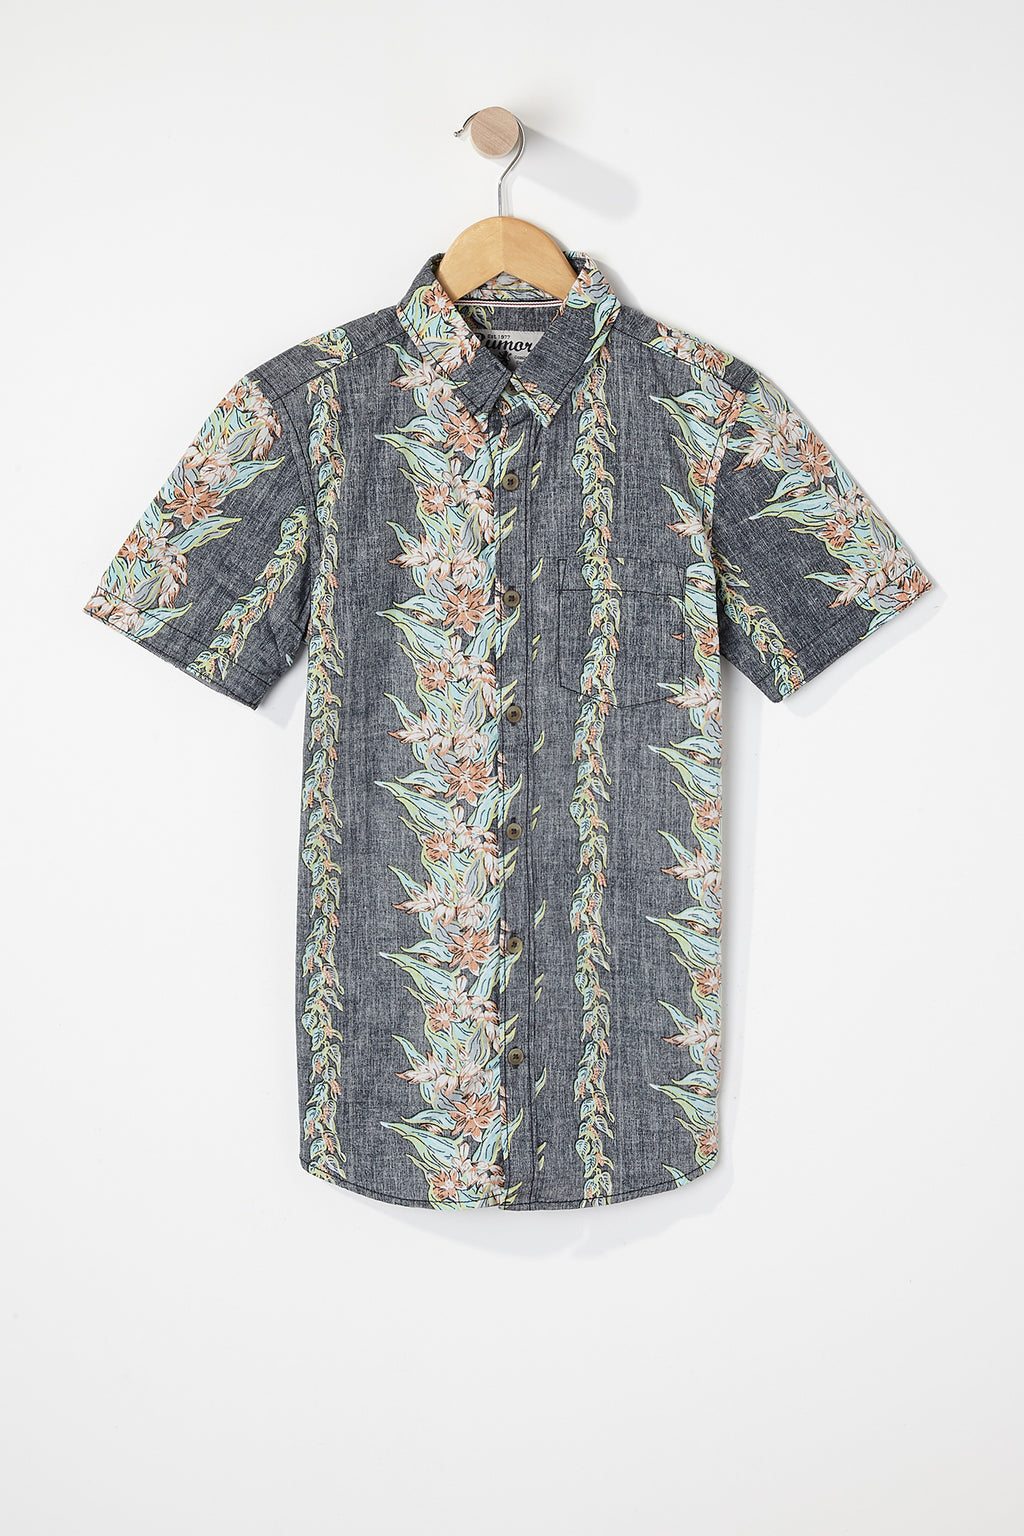 West49 Boys Floral Button Up